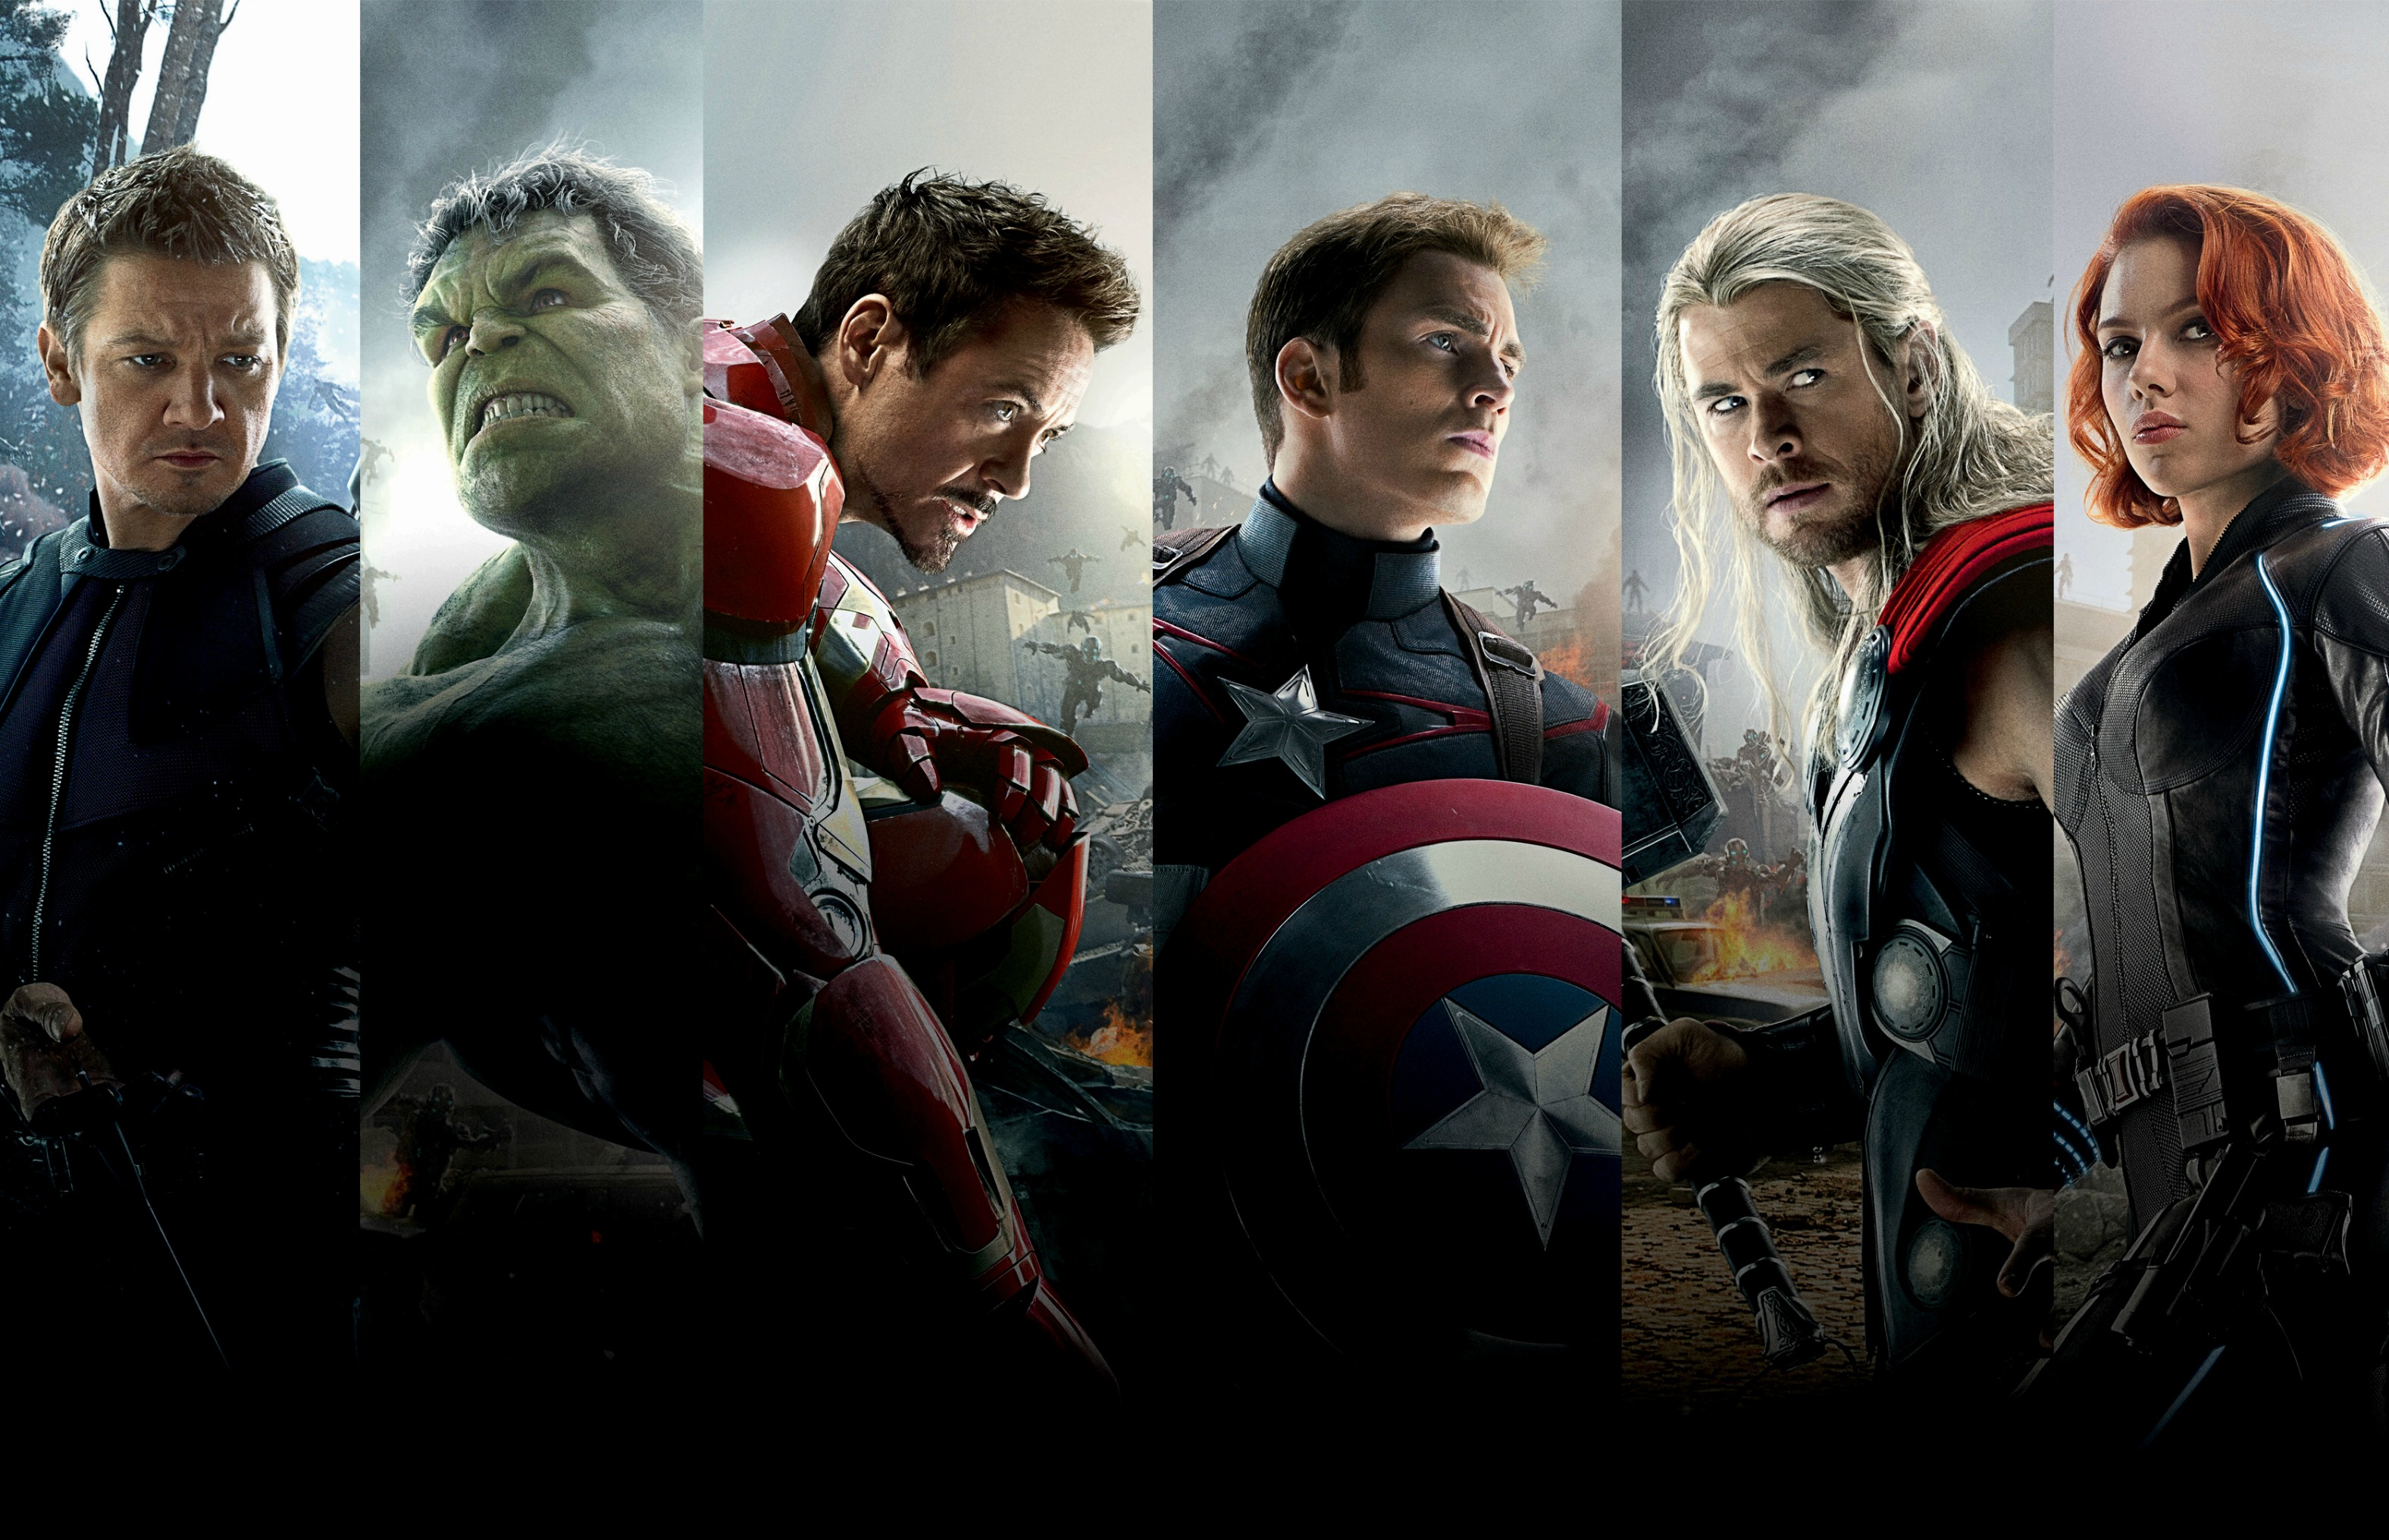 Things That Go Boom Avengers Age Of Ultron 2015